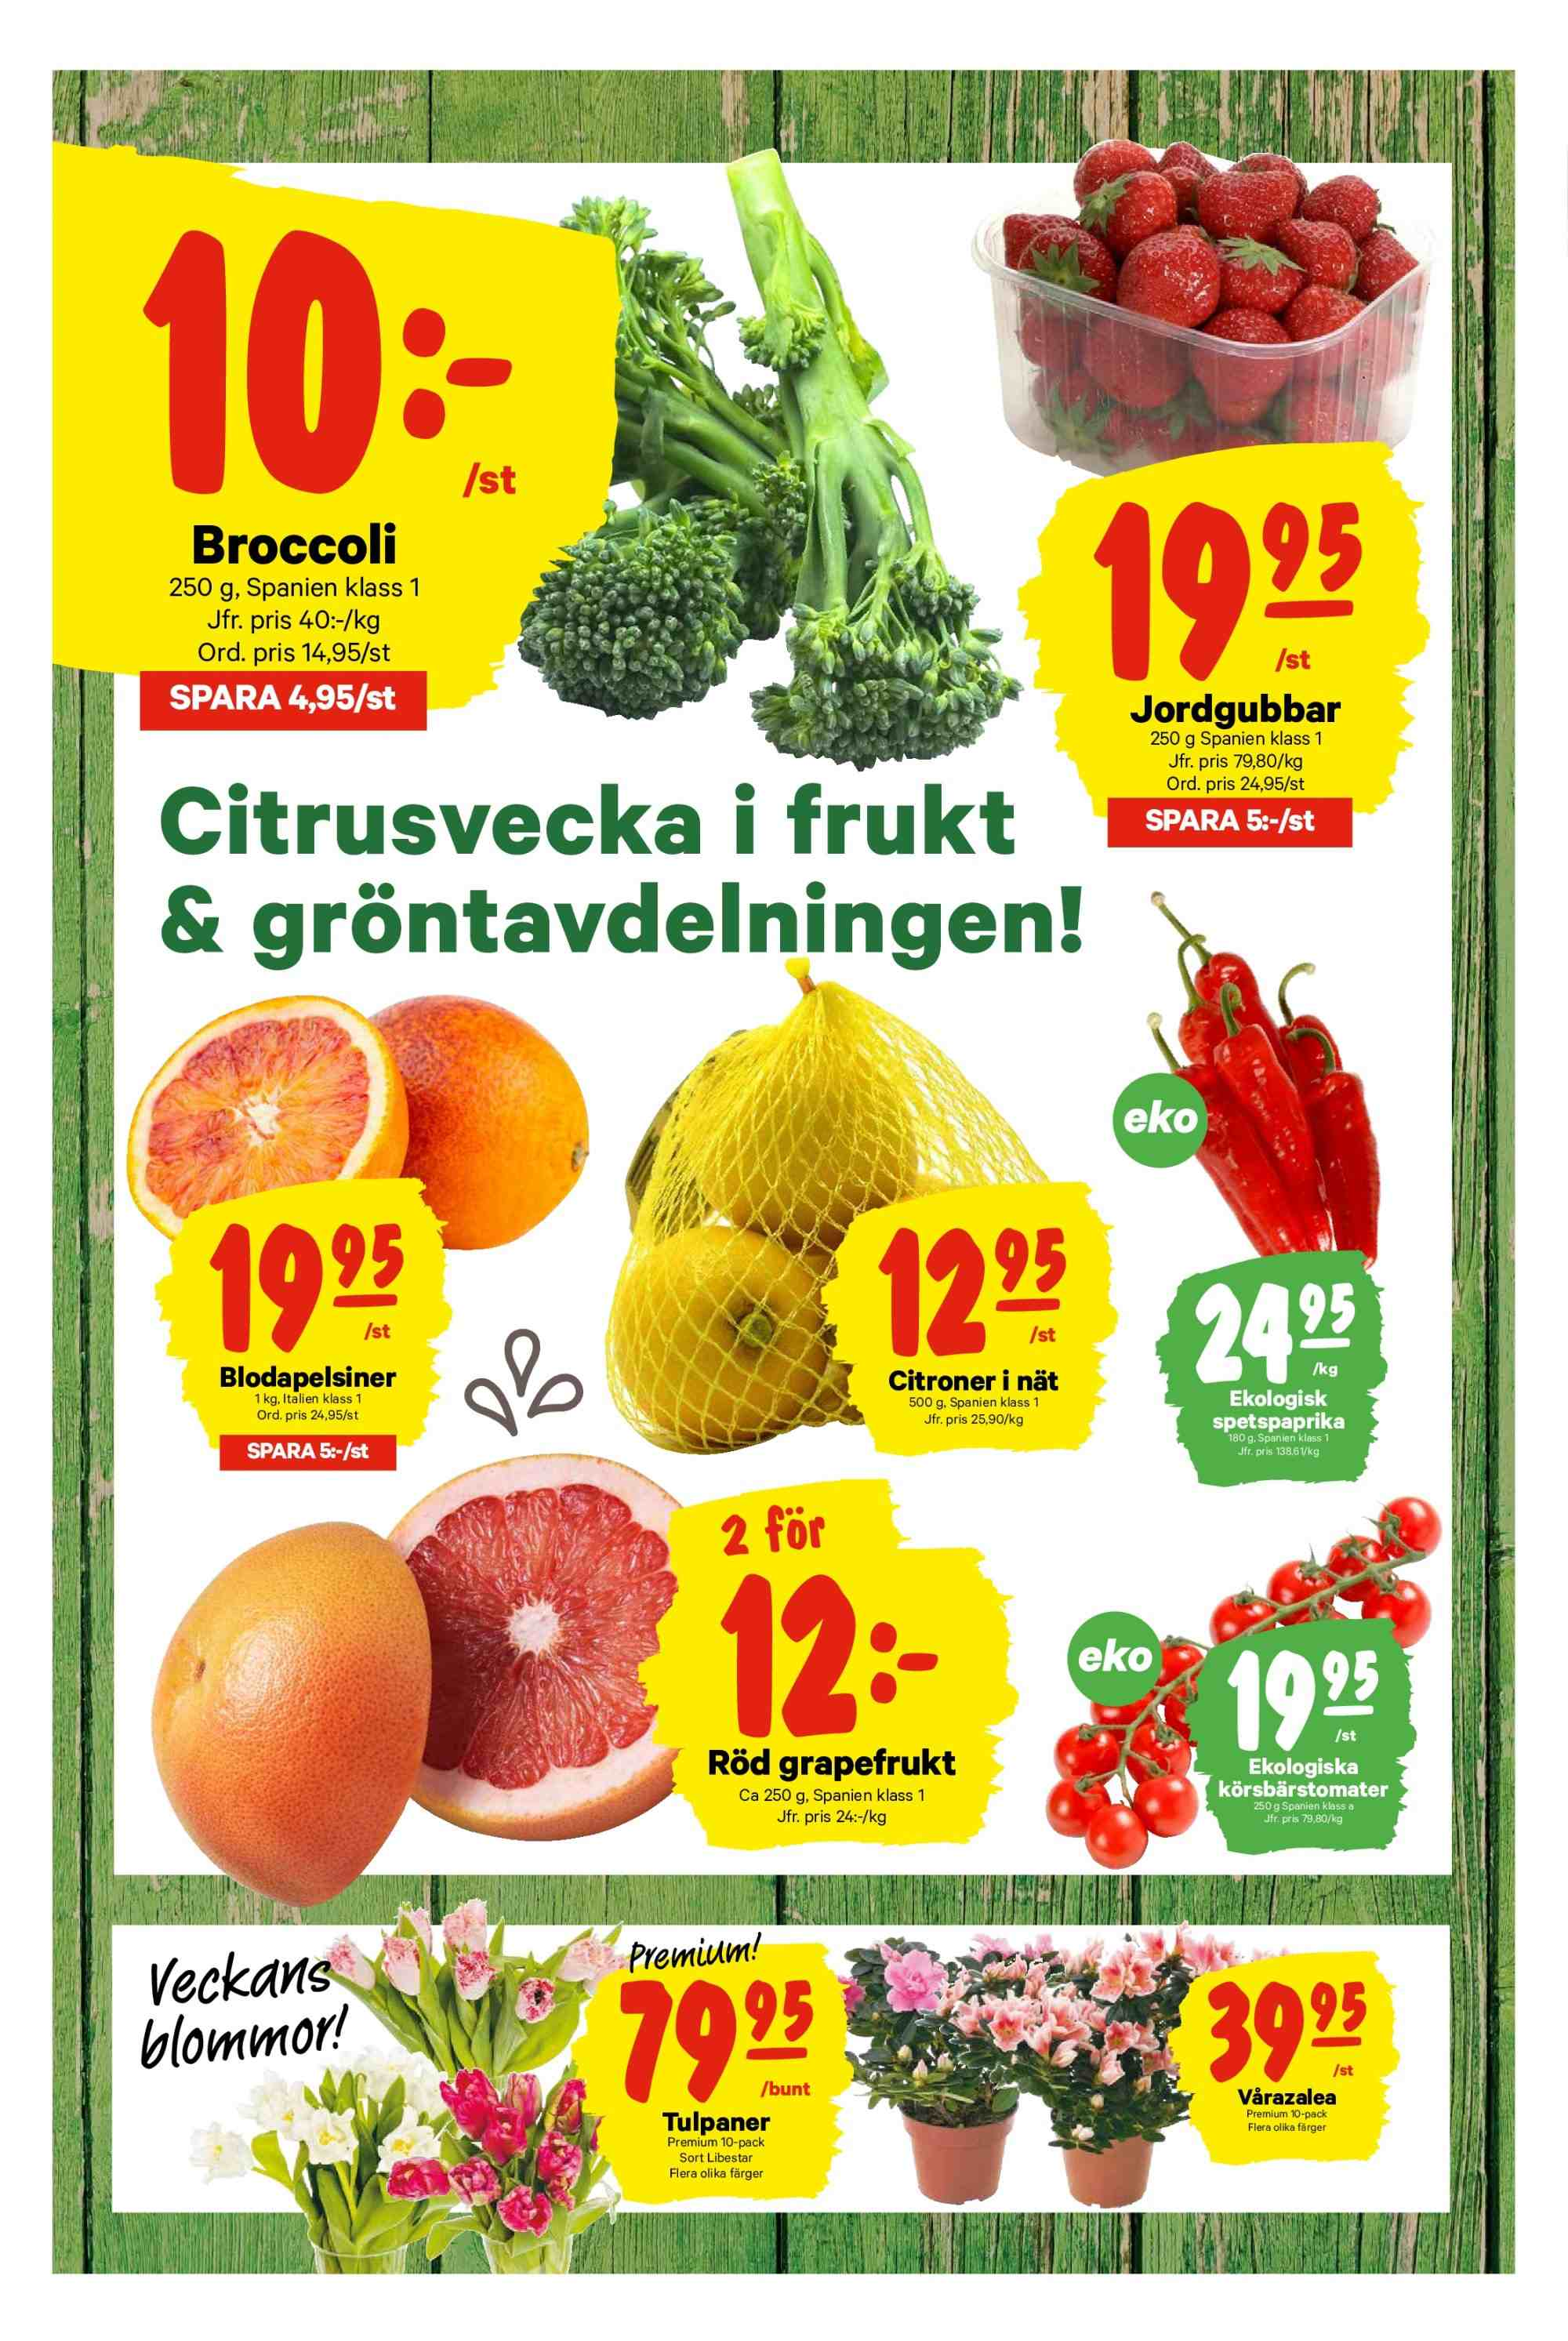 City Gross reklamblad - 25/2 2019 - 3/3 2019. Sida 4.